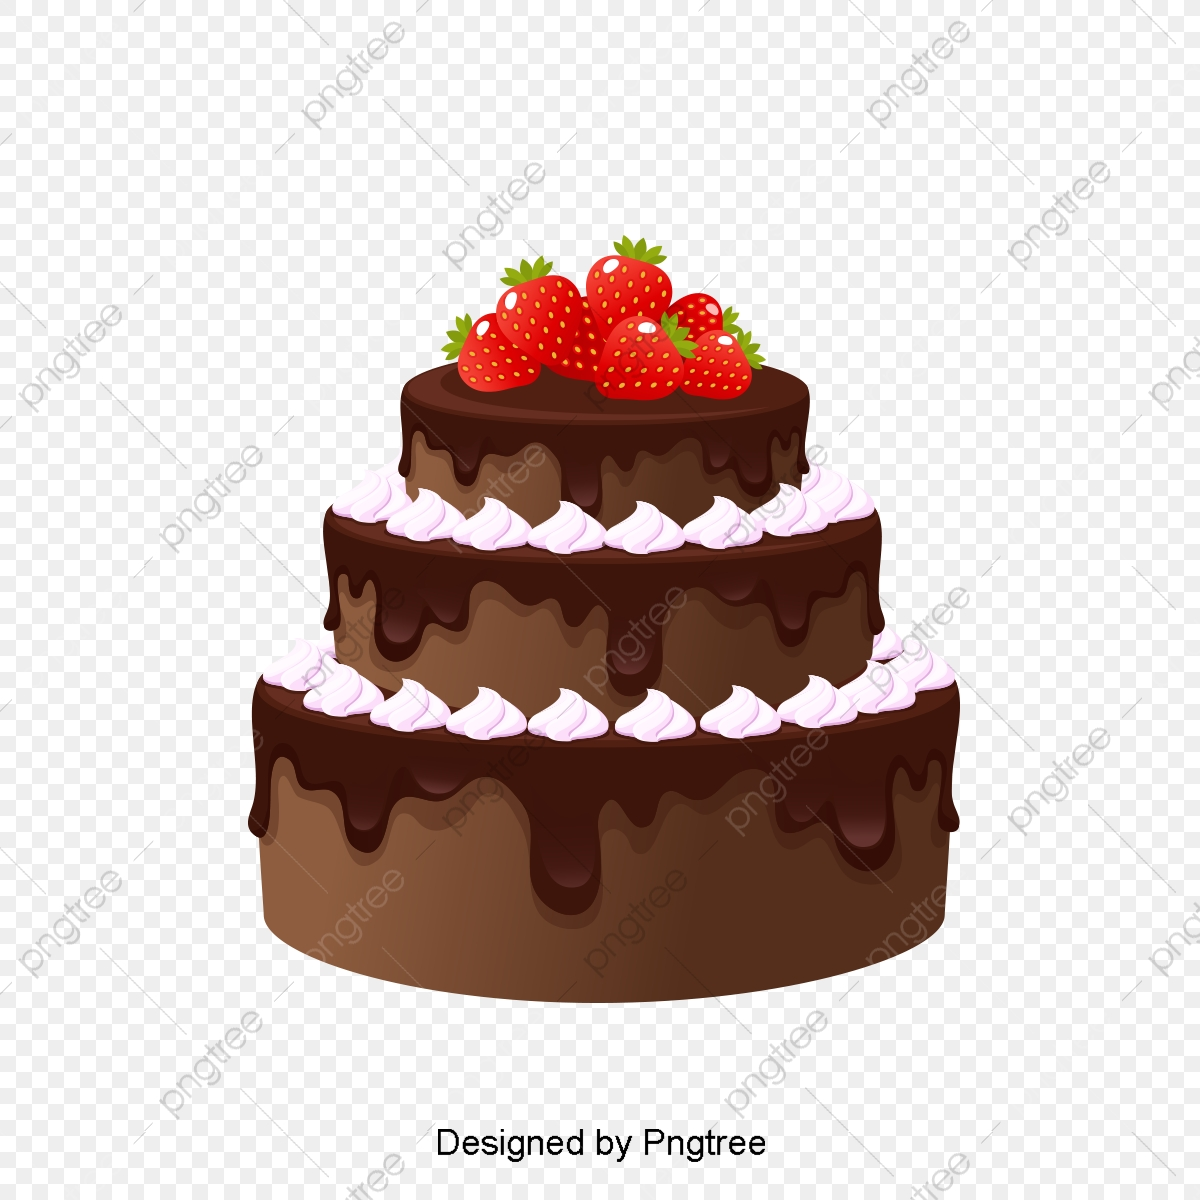 Birthday Cake Png Vector Psd And Clipart With Transparent Background For Free Download Pngtree